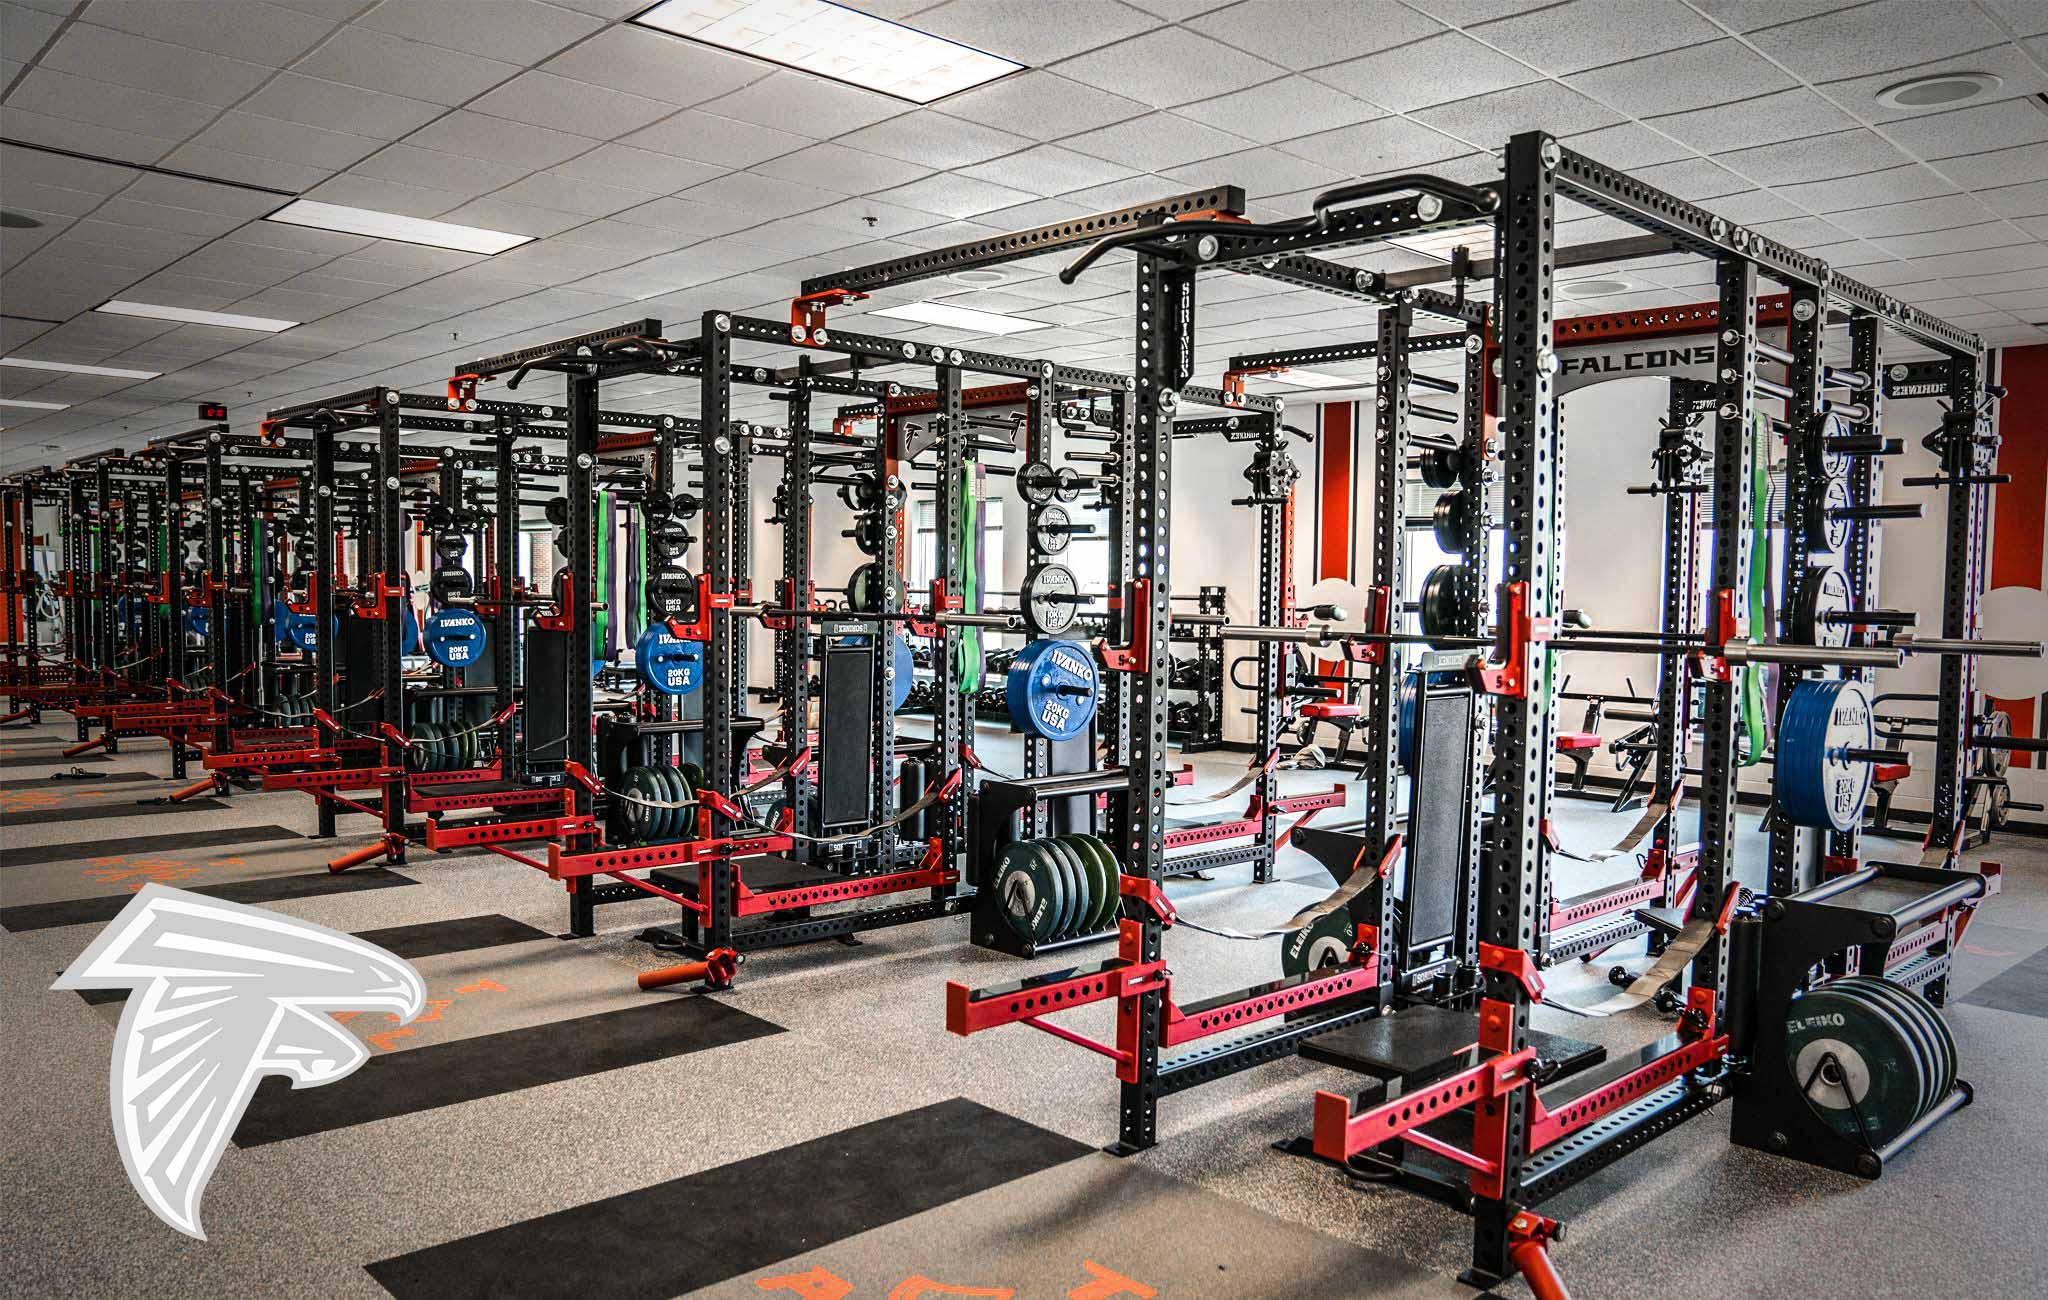 Atlanta Falcons Sorinex strength and conditioning facility